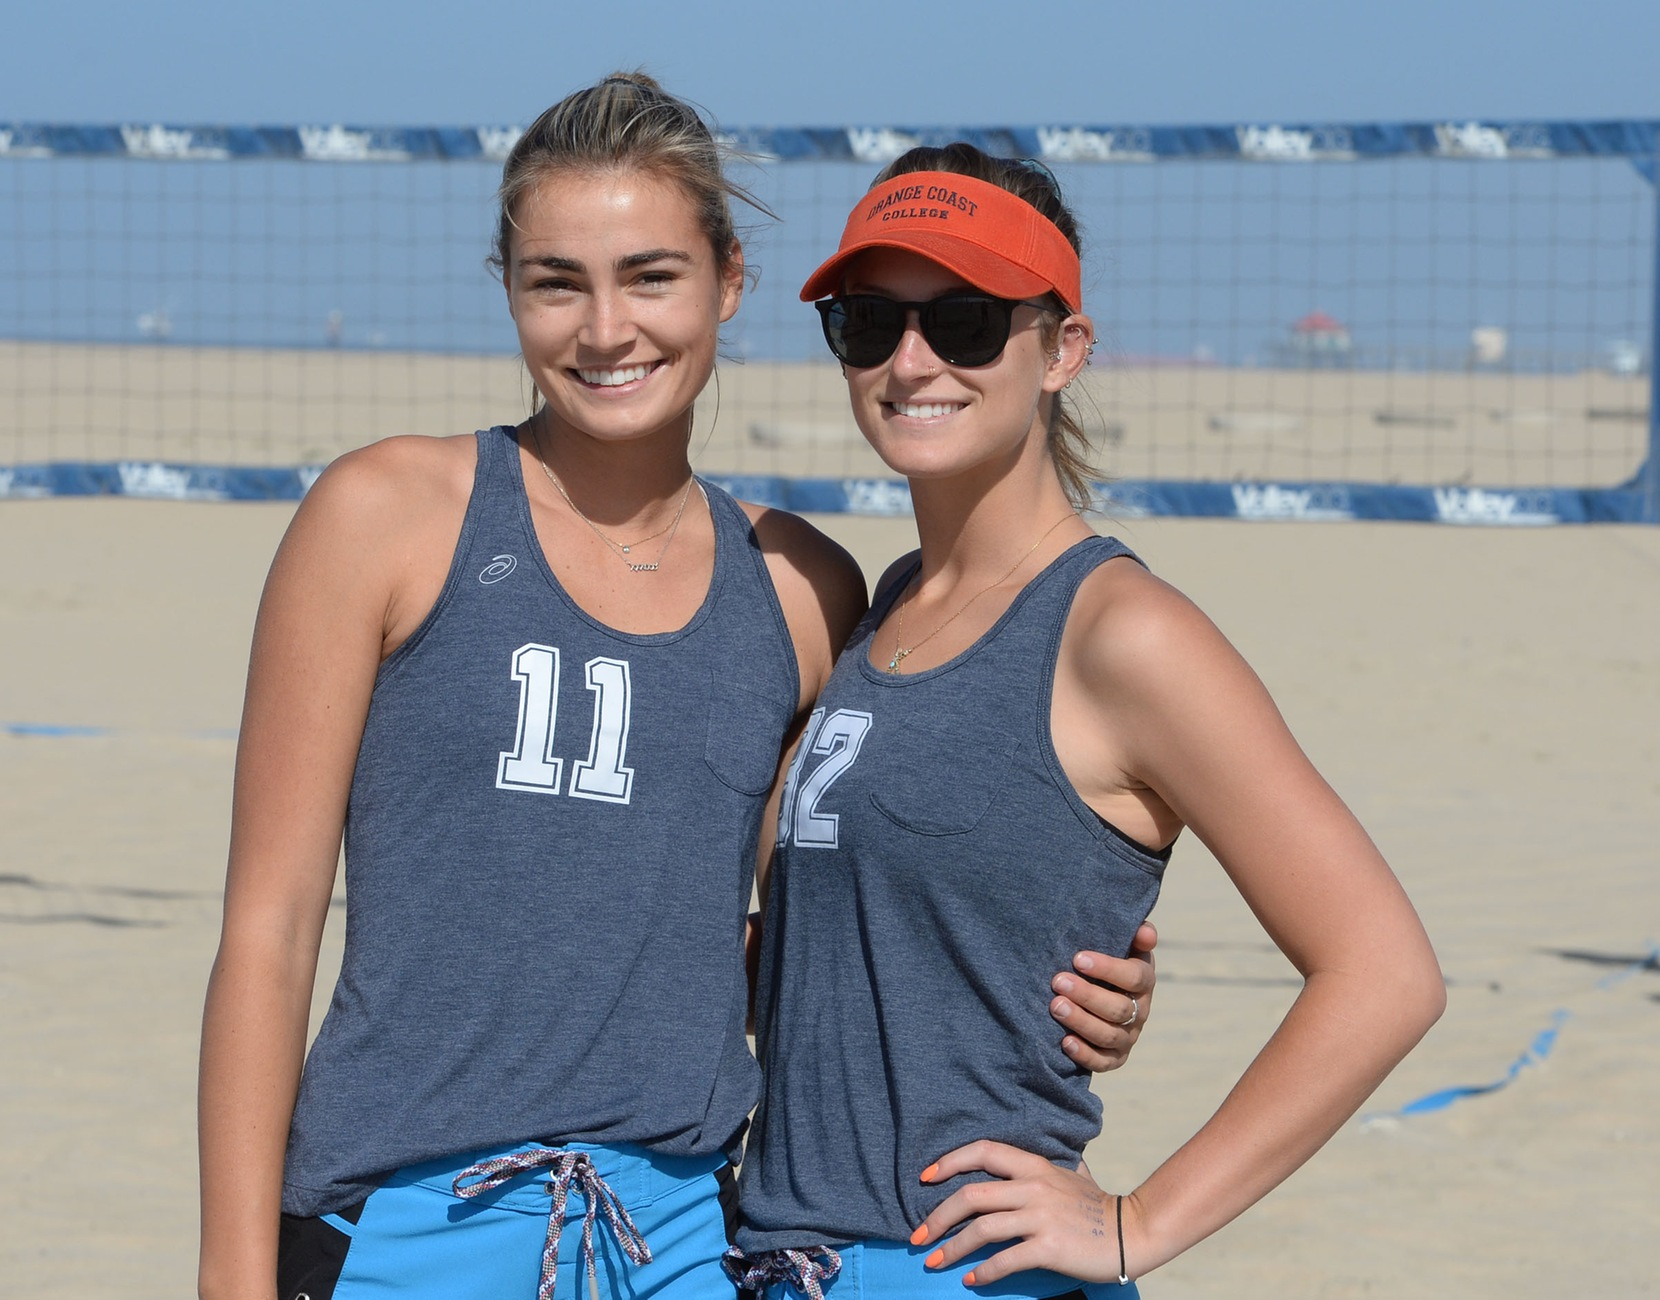 Pirate beach VB pair advances to SoCal Regionals